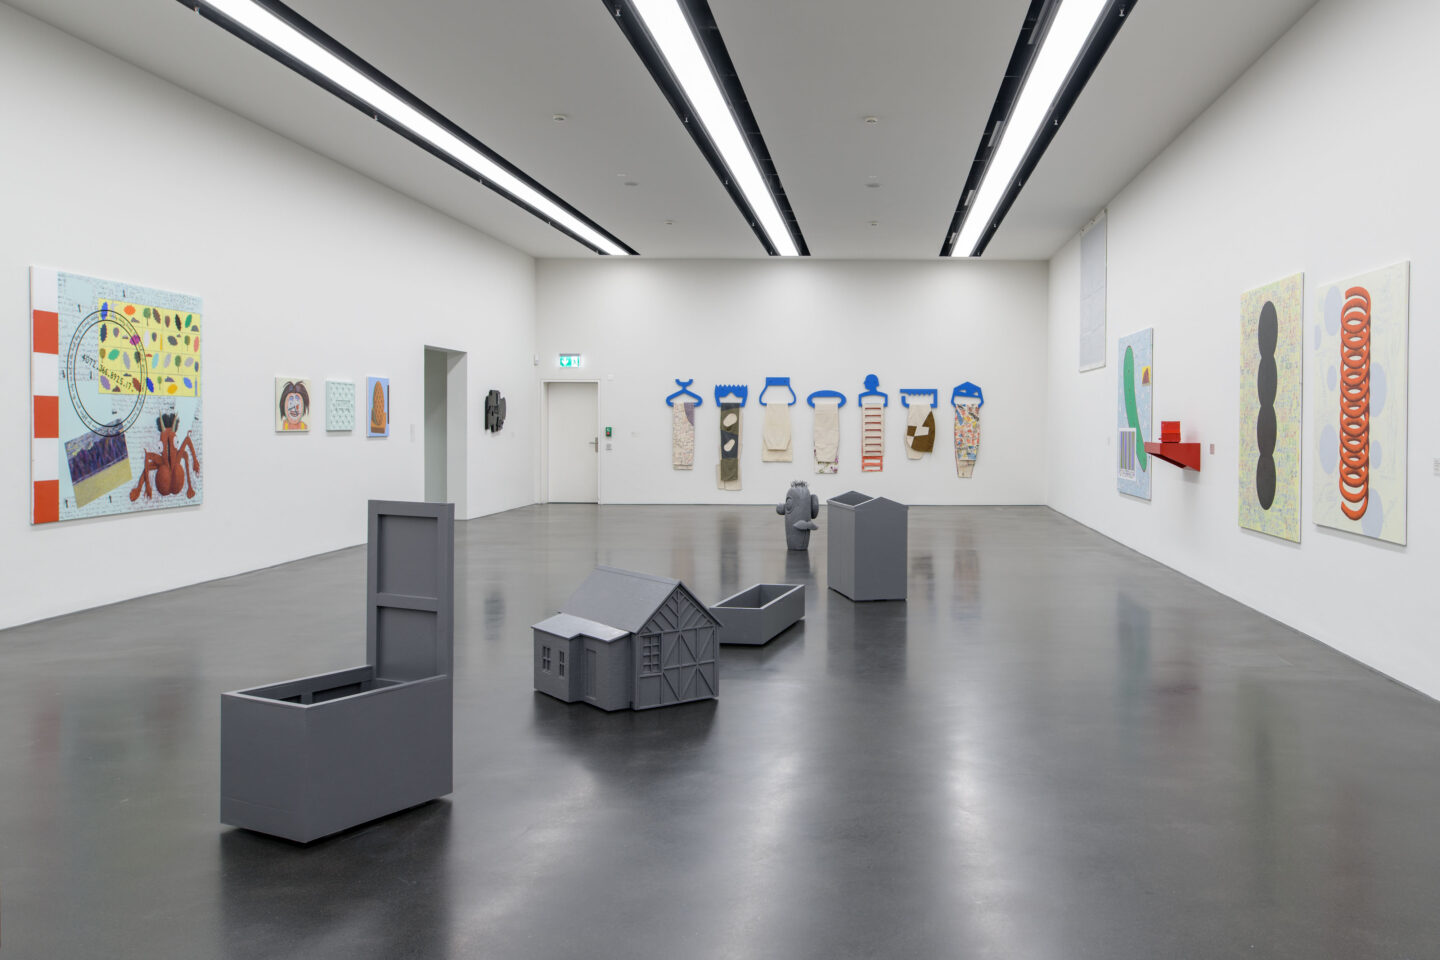 Exhibition View Fabian Peake Soloshow «A Swift at the Corner» at Kunstmuseum Luzern, Lucerne, 2019 / Photo: Marc Latzel / Courtesy: the artist and Kunstmuseum Luzern